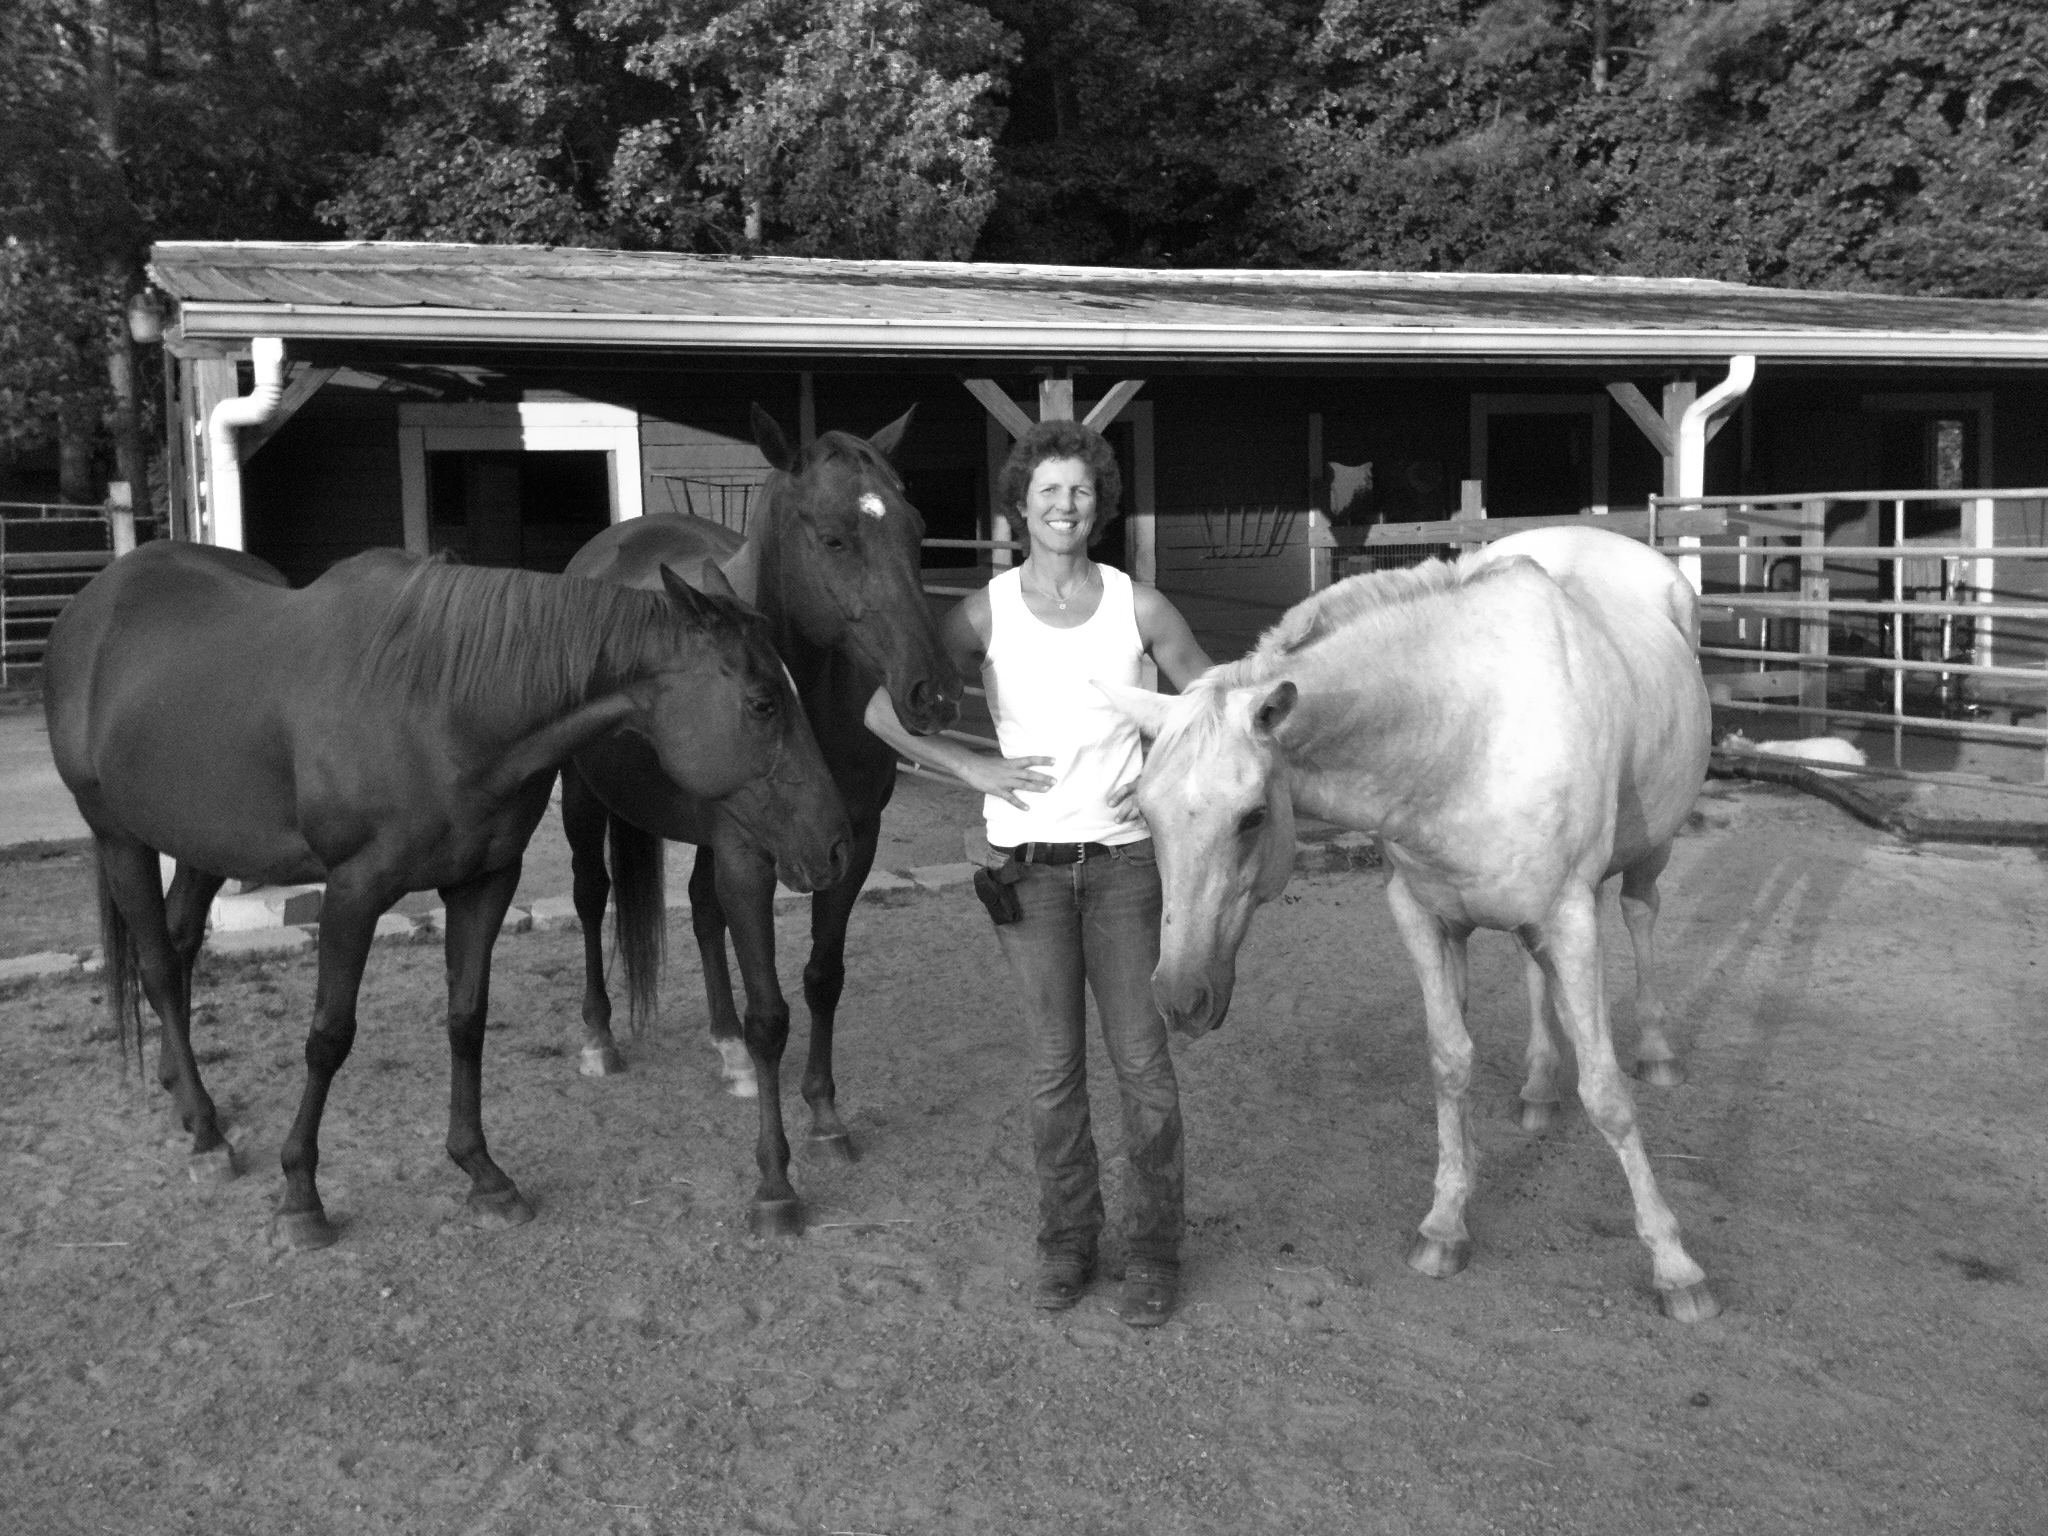 Michelle Akers and Horses